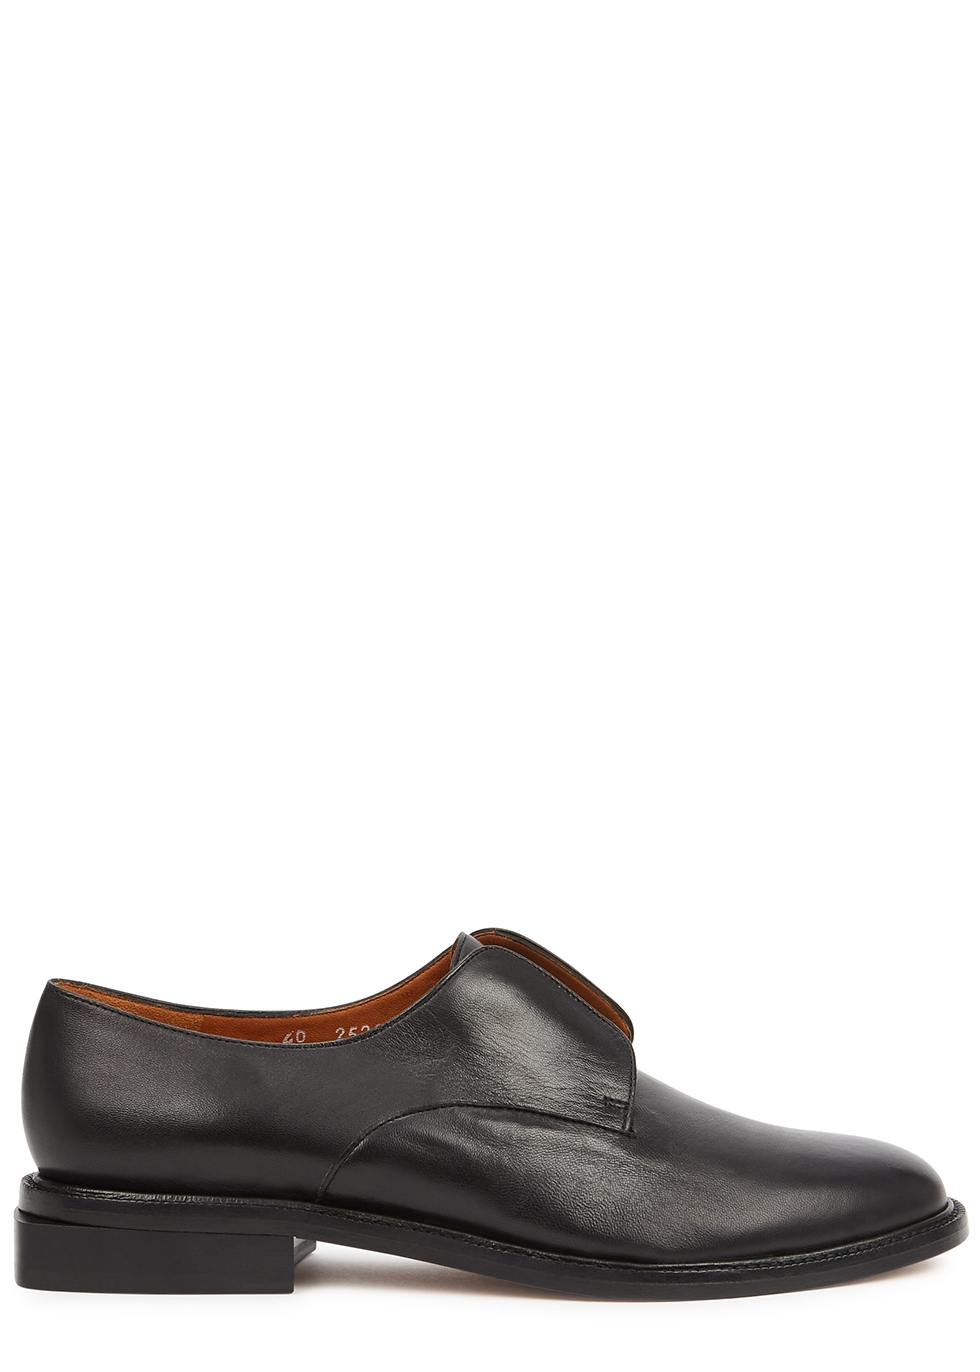 Rayane 25 black leather loafers